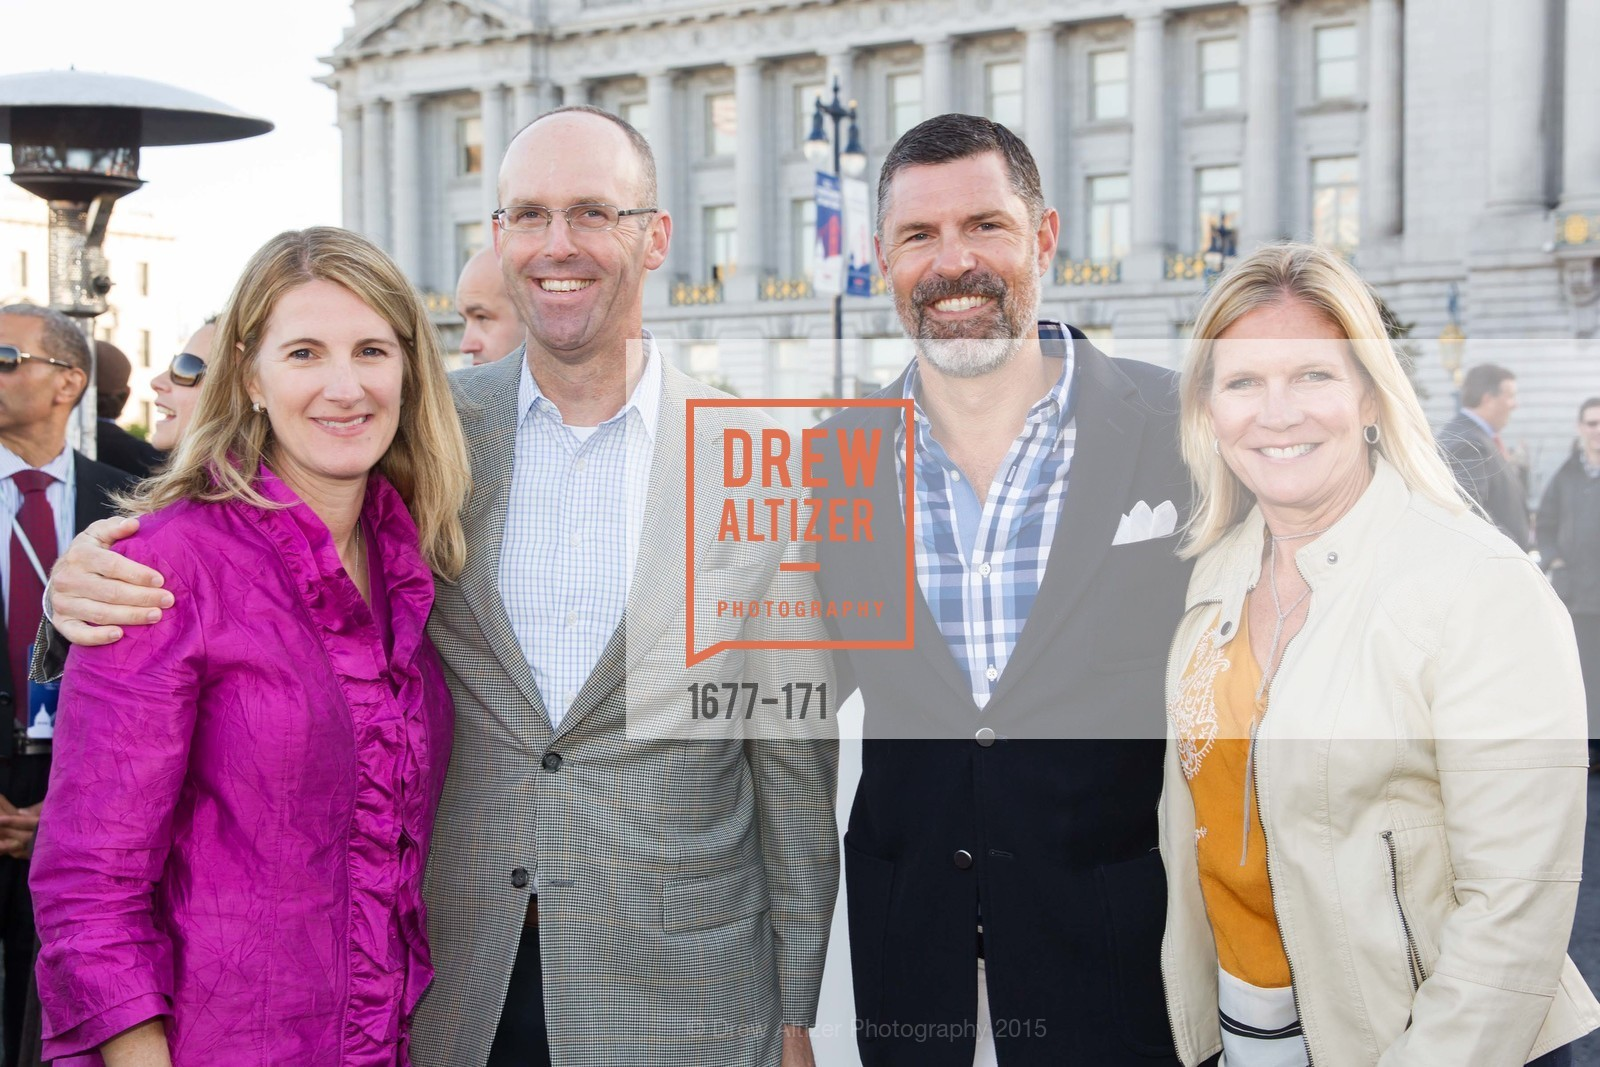 Pam Nootbaar, Joe Nootbaar, Stephen Watkins, Carol Watkins, San Francisco City Hall Centennial Celebration, Civic Center Plaza, June 18th, 2015,Drew Altizer, Drew Altizer Photography, full-service agency, private events, San Francisco photographer, photographer california